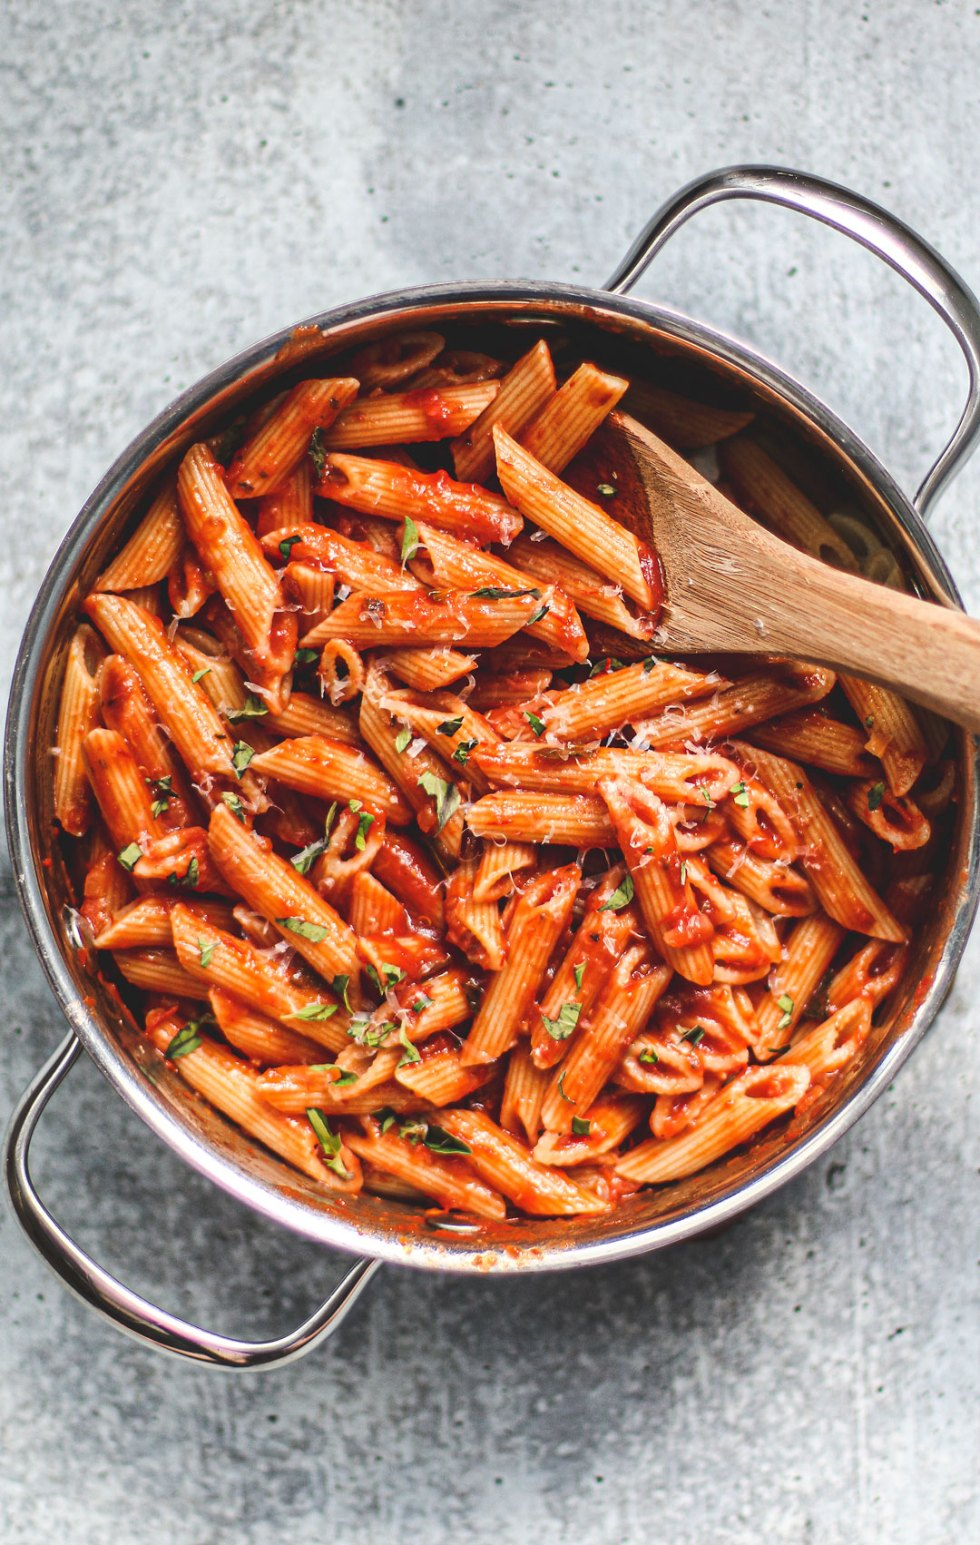 Serving pot full of penne tossed in marinara sauce and fresh herbs.